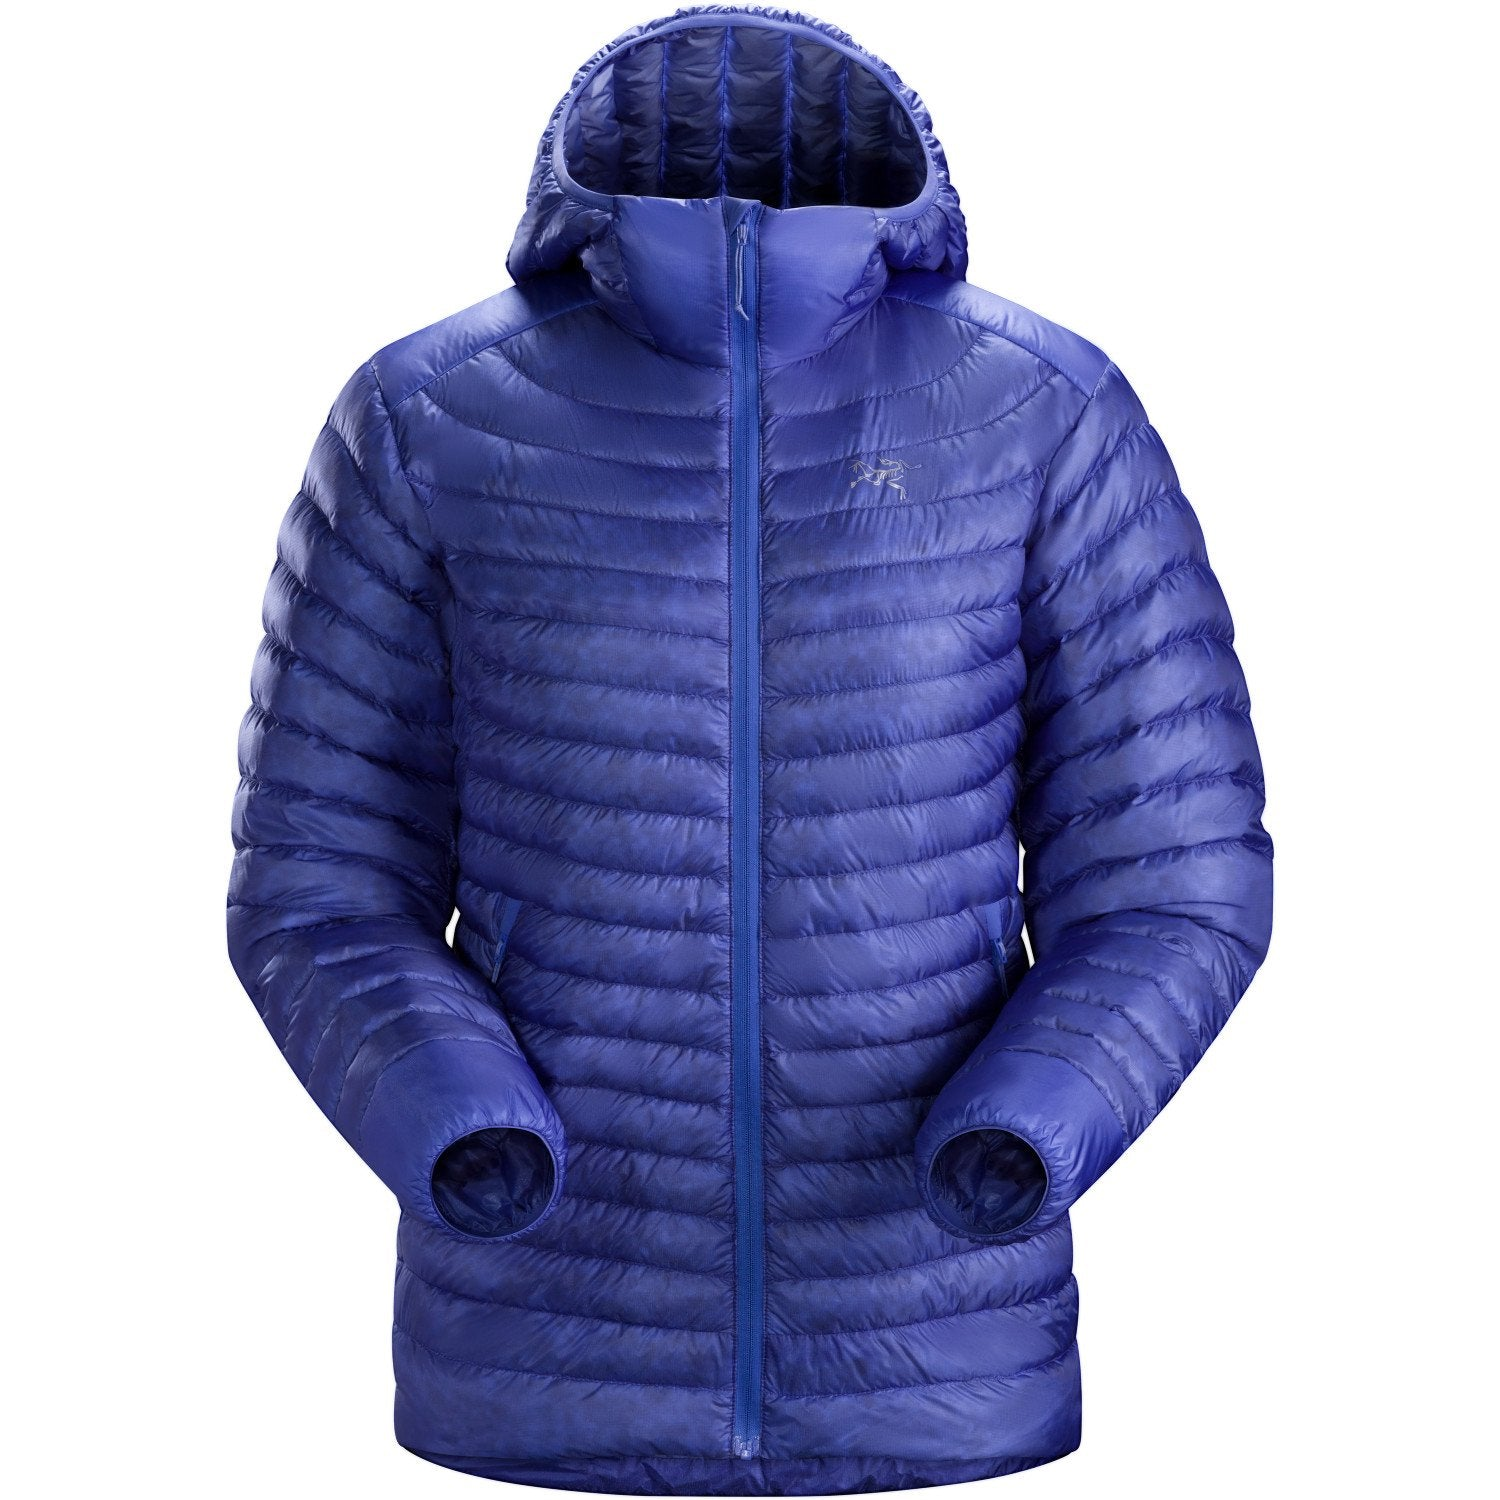 ArcTeryx Cerium SL Hoody Women's in Purple